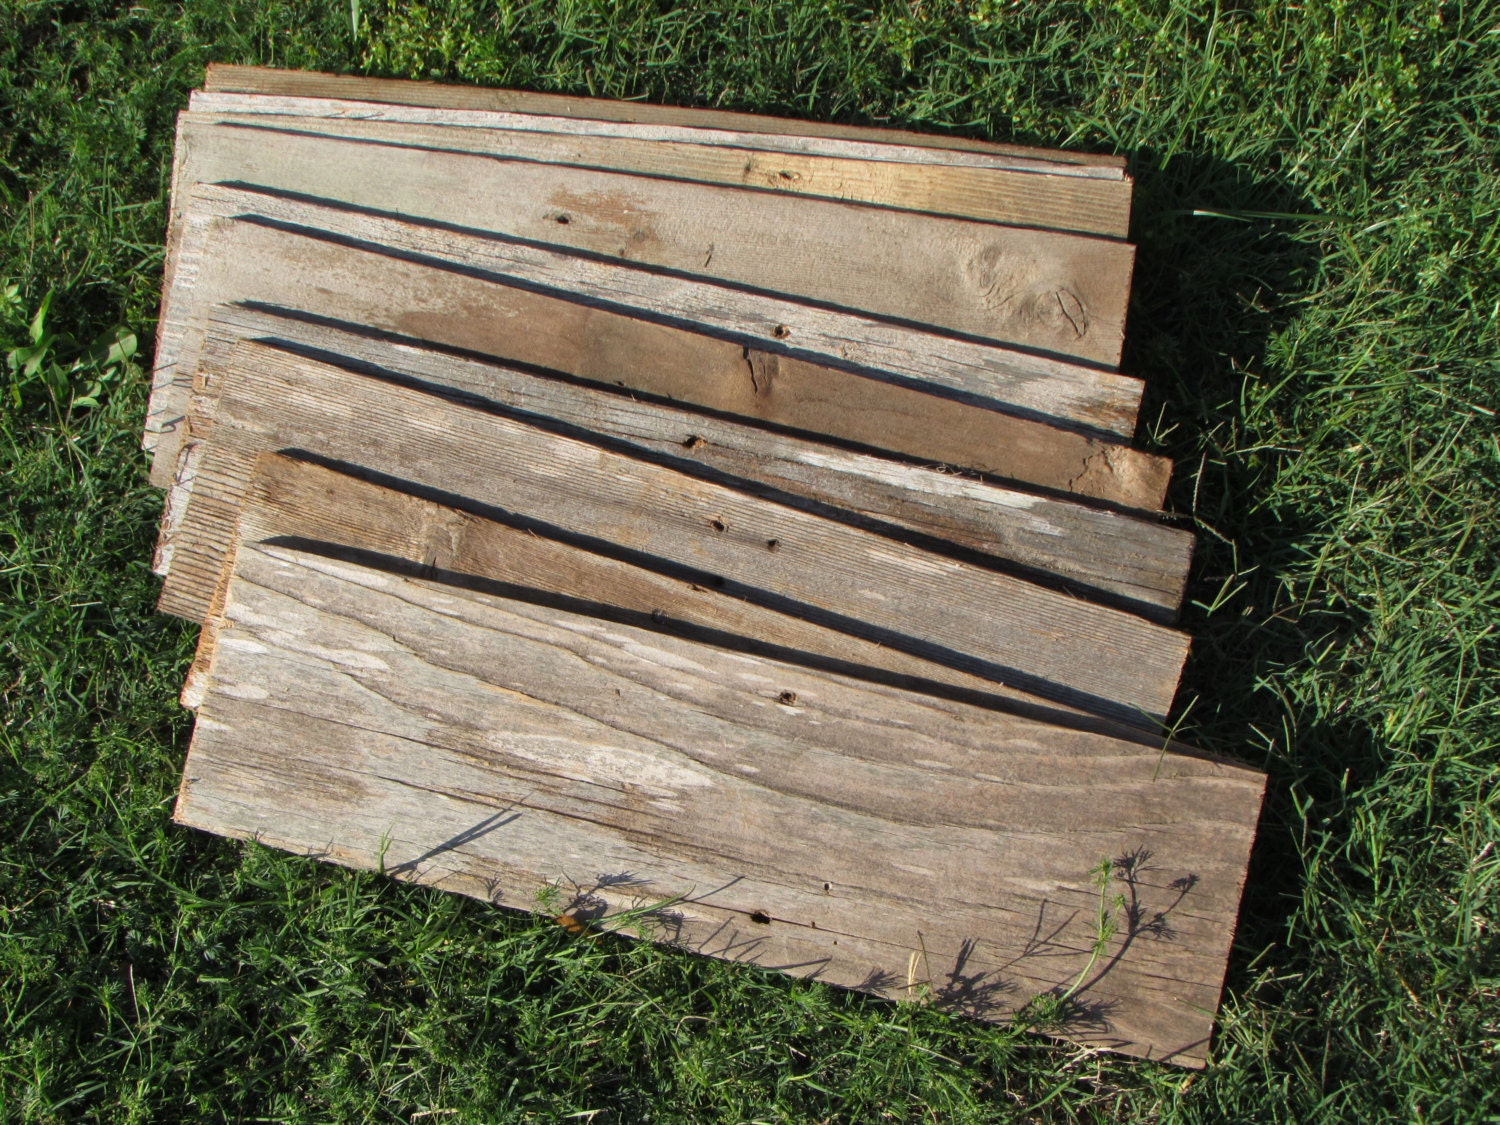 Reclaimed old fence wood 5 boards 20 inch length for Recycled wood board